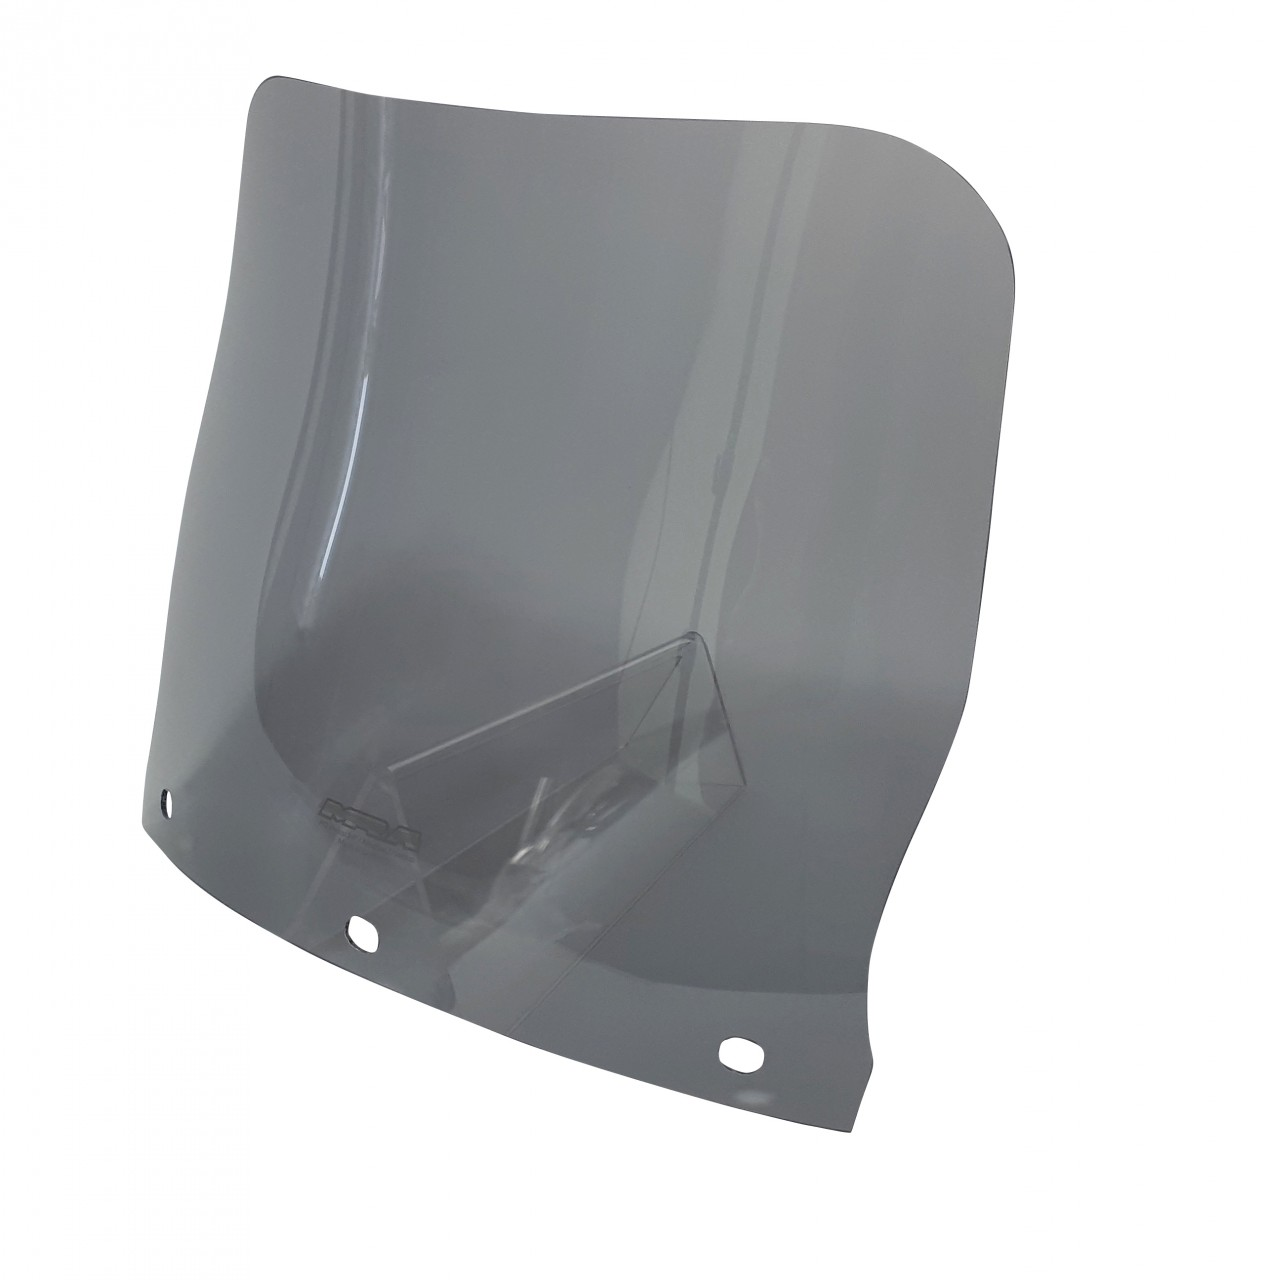 "KLR 650 - Touring windshield ""T"" 1987-1988 - Image 2"